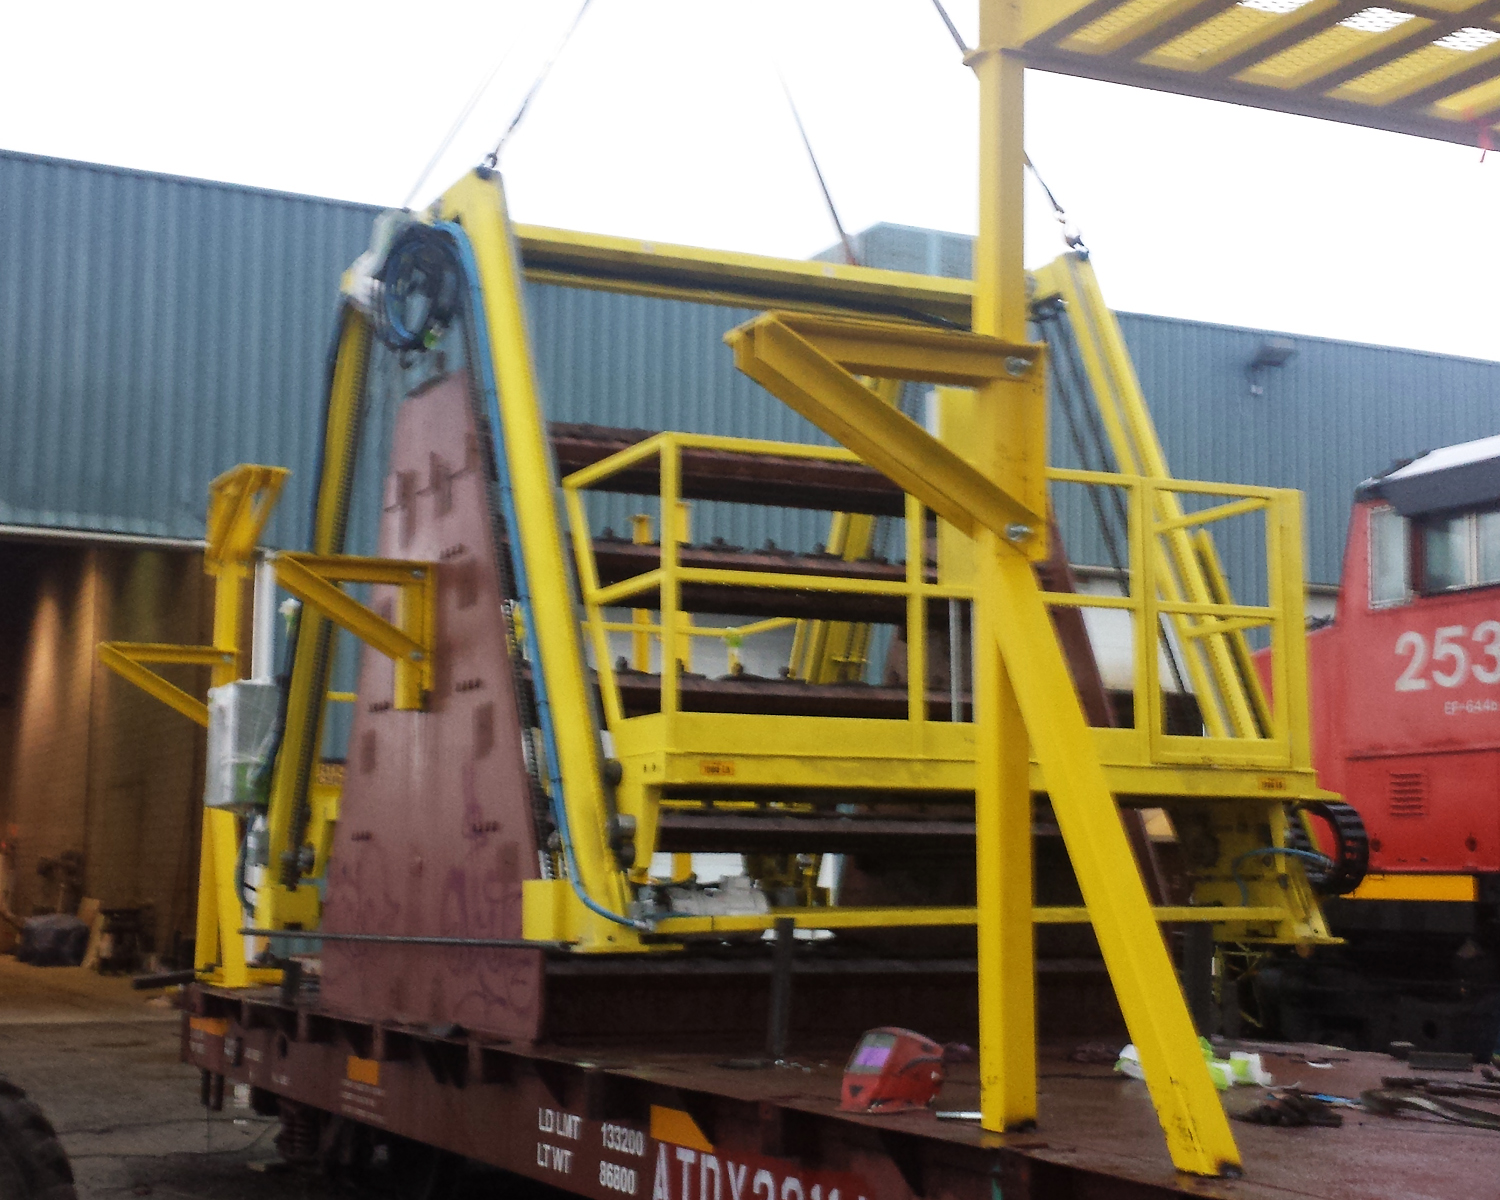 Personnel Lift for Continuous Welded Railcars (CWR)